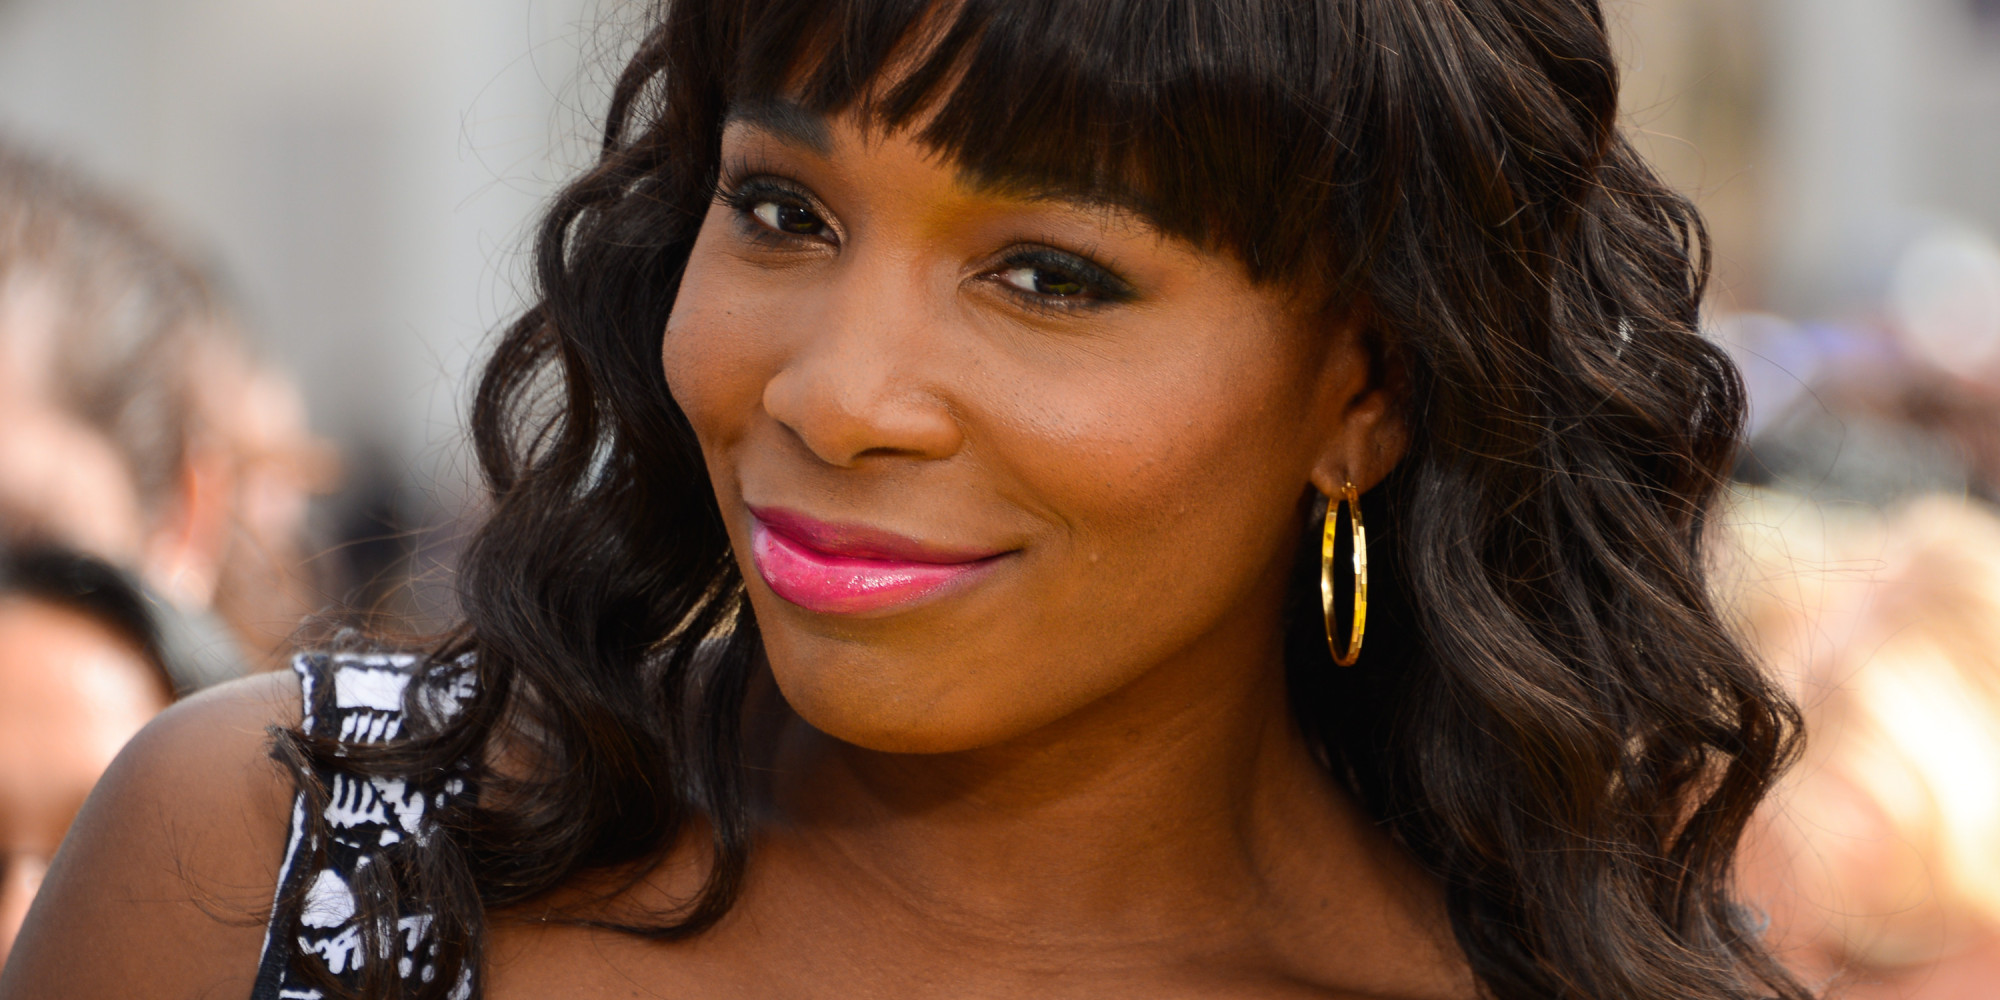 fantastic venus williams beautiful smile look hd desktop backgroud free mobile pictures